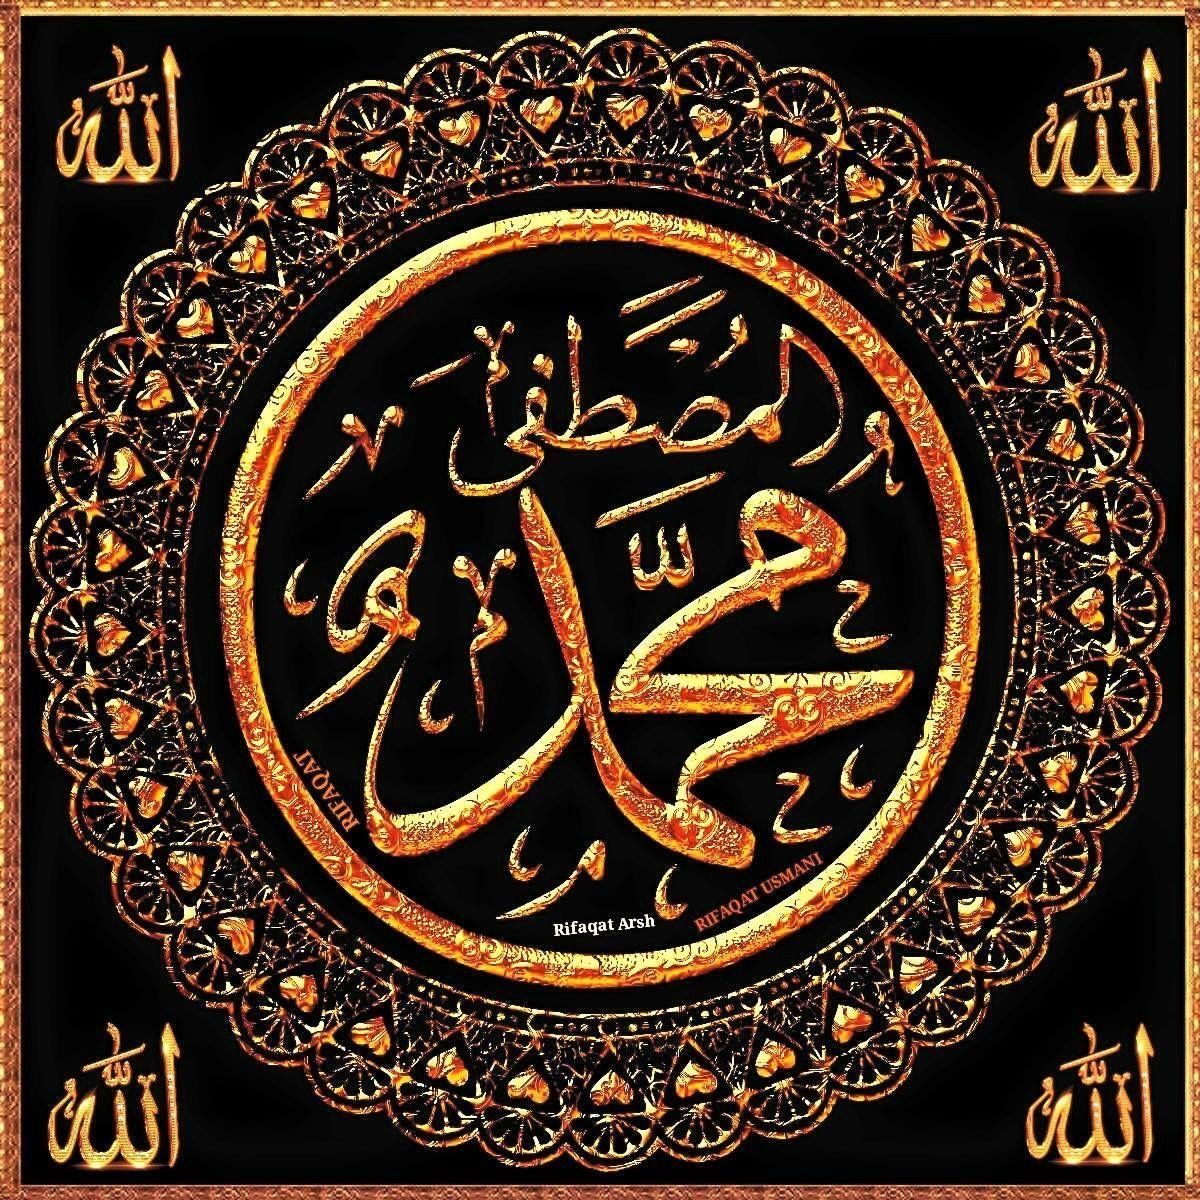 Islamic calligraphy image by Mutazz Balbisi on Arabic